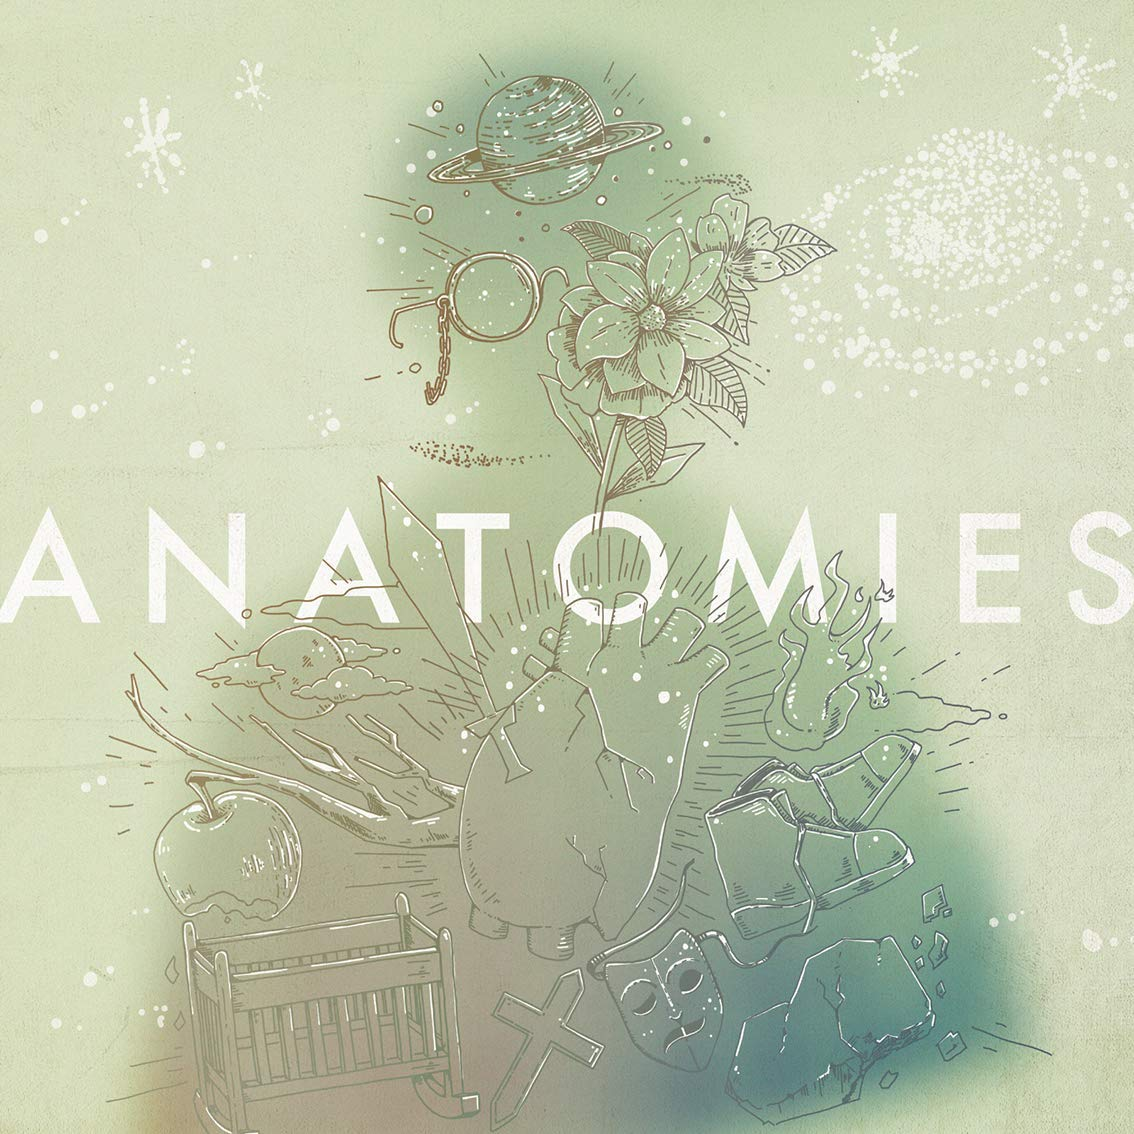 HALO AT 4JOHAN – ANATOMIES (Album)